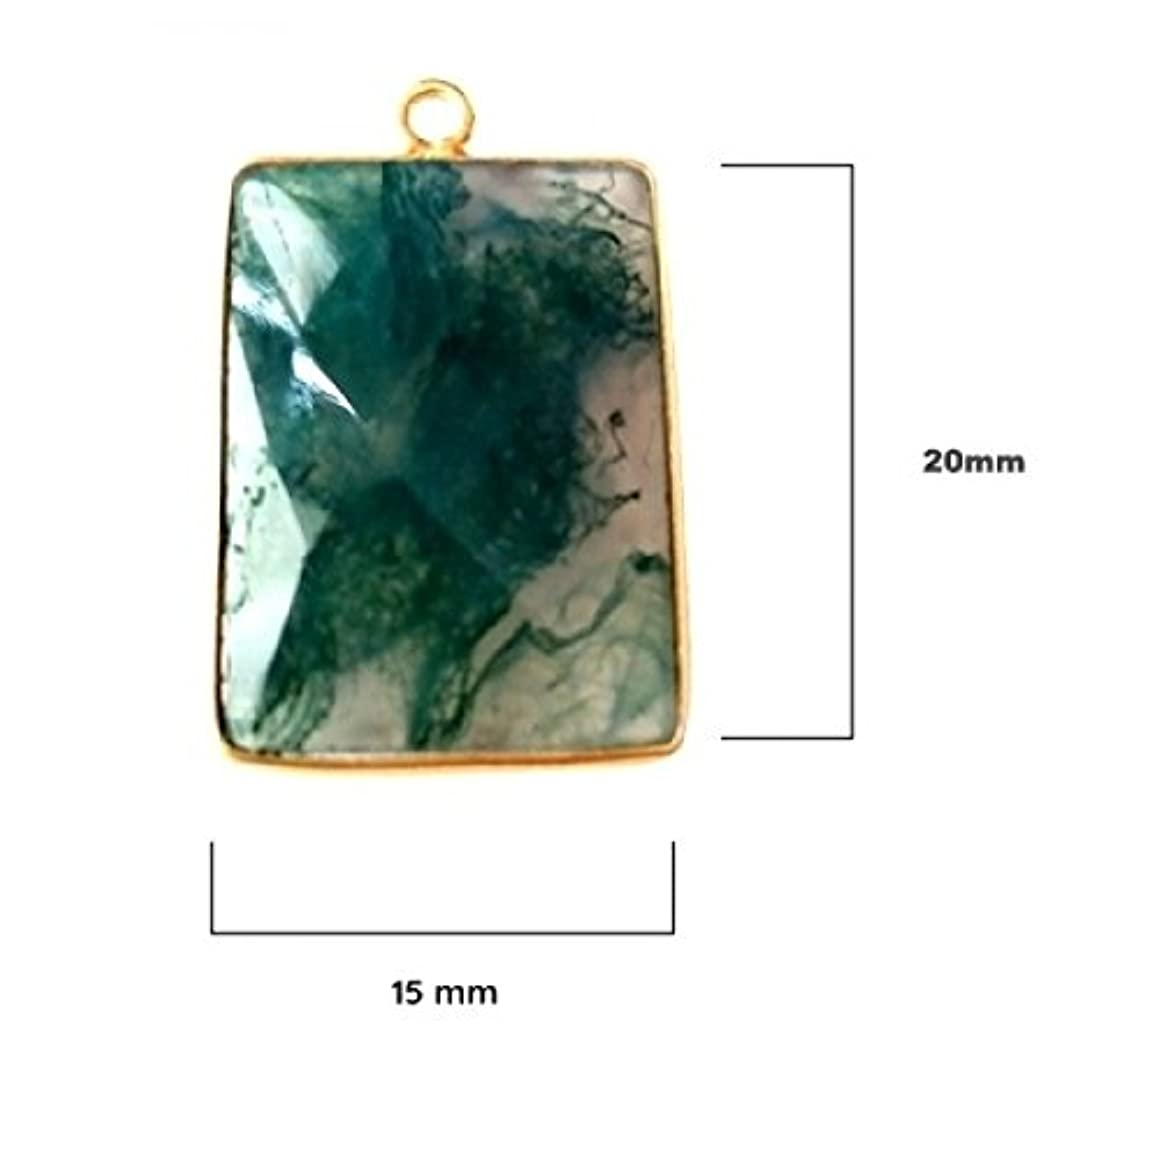 2 Pcs Natural Moss Agate Rectangle Beads 15X20mm 24K Gold Vermeil by BESTINBEADS, Natural Moss Agate Rectangle Pendant Bezel Gemstone Connectors Over 925 Sterling Silver Bezel Jewelry Making Supplies